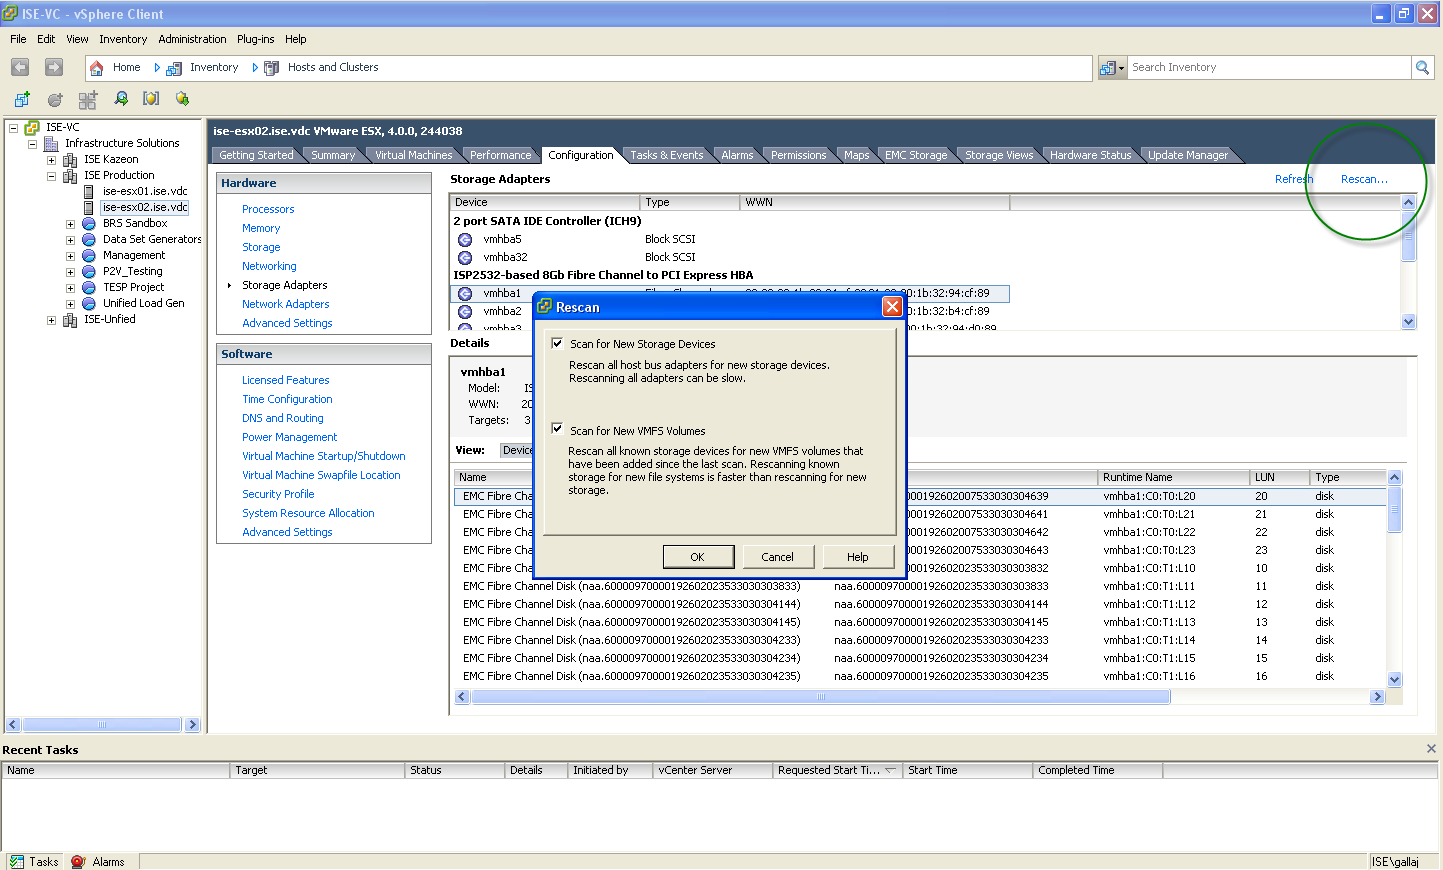 To initiate a scan so that the VMware ESX host can discover the SAP